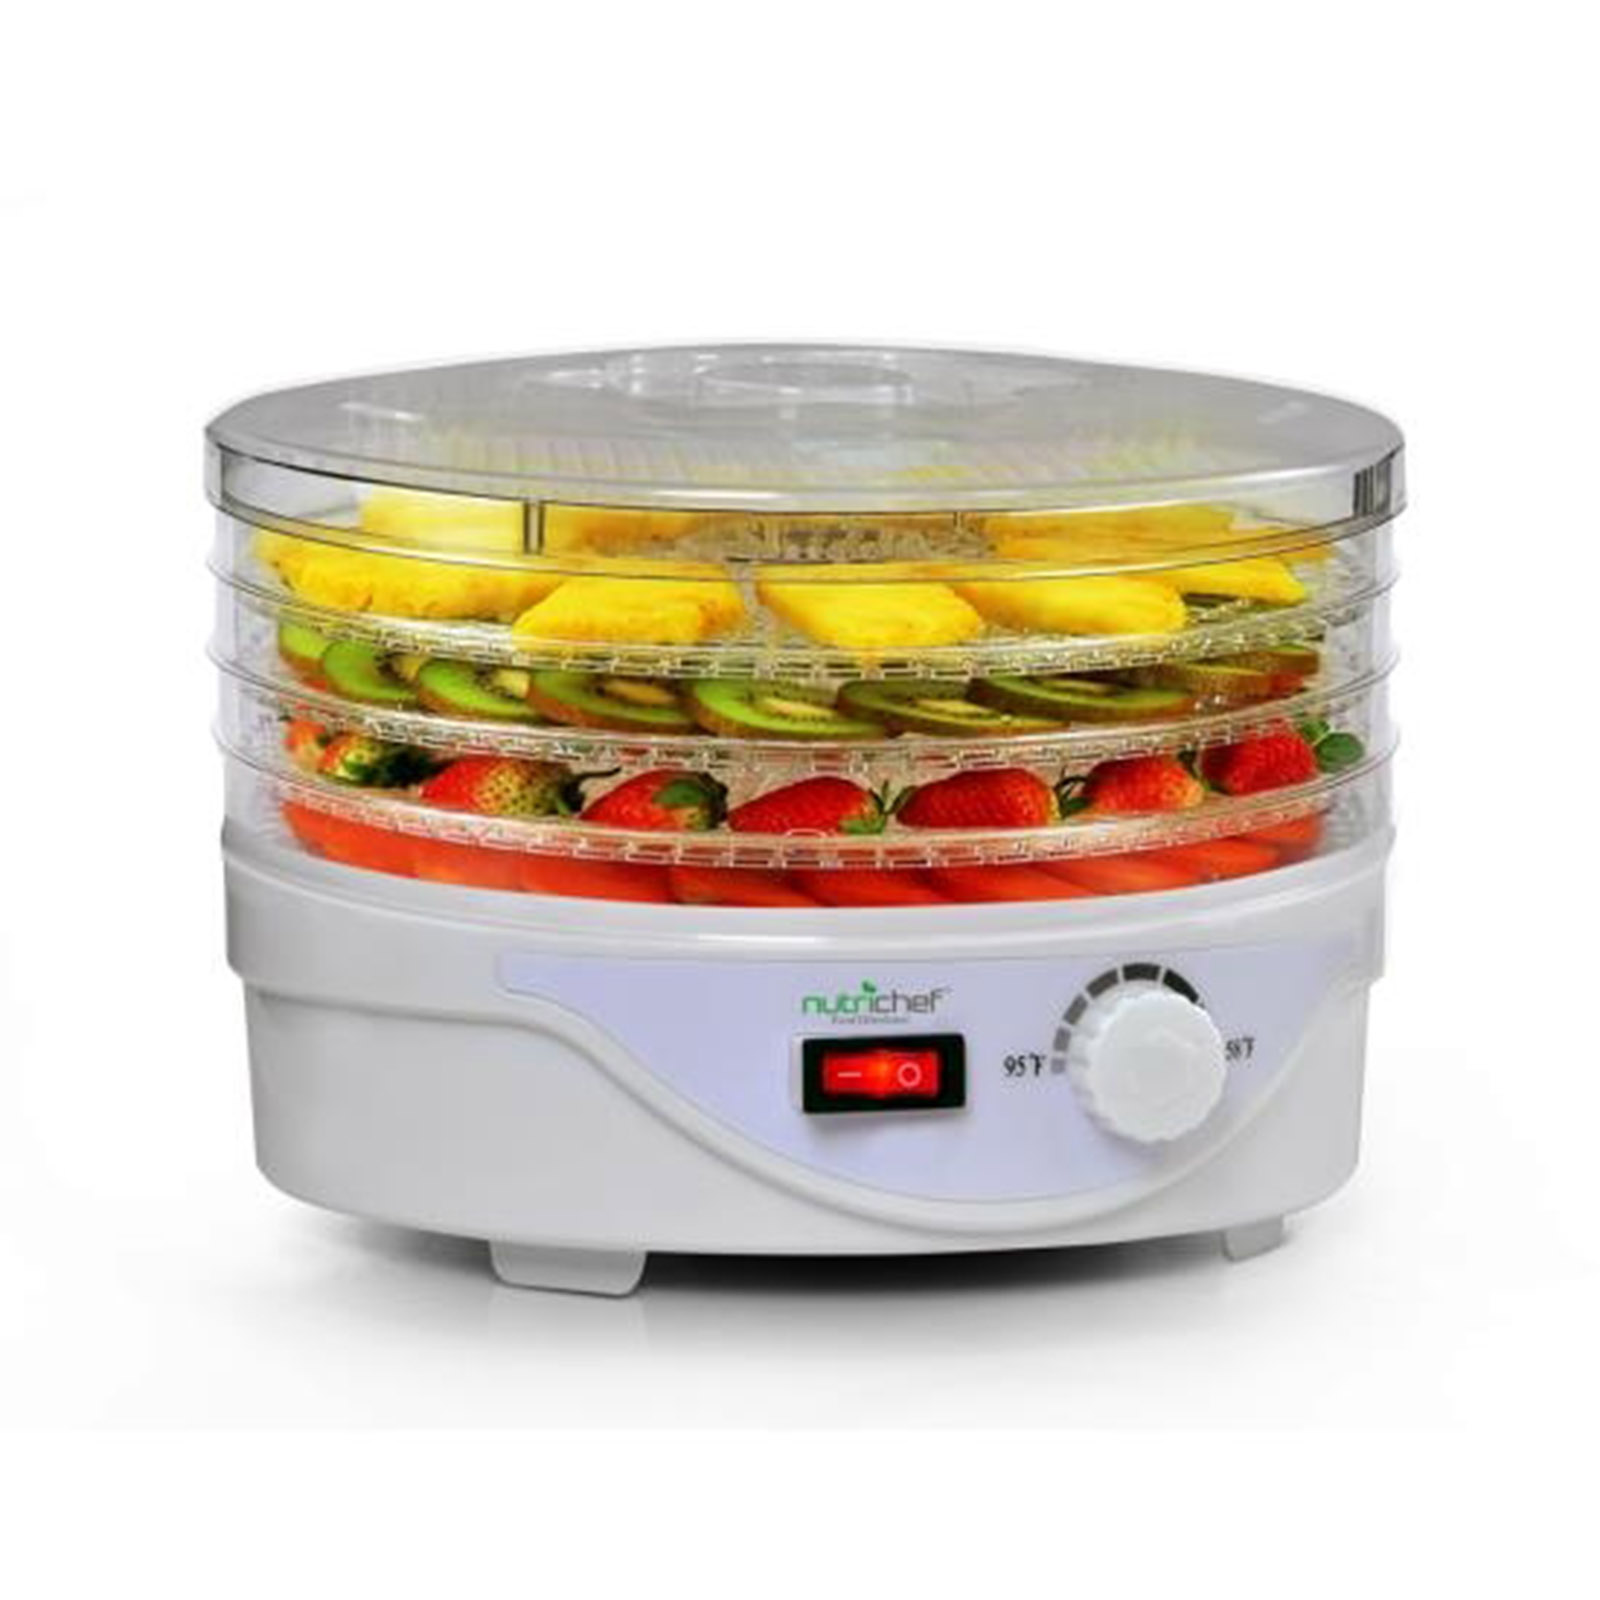 NutriChef Compact Electric Countertop Food Dehydrator - Food Preserver